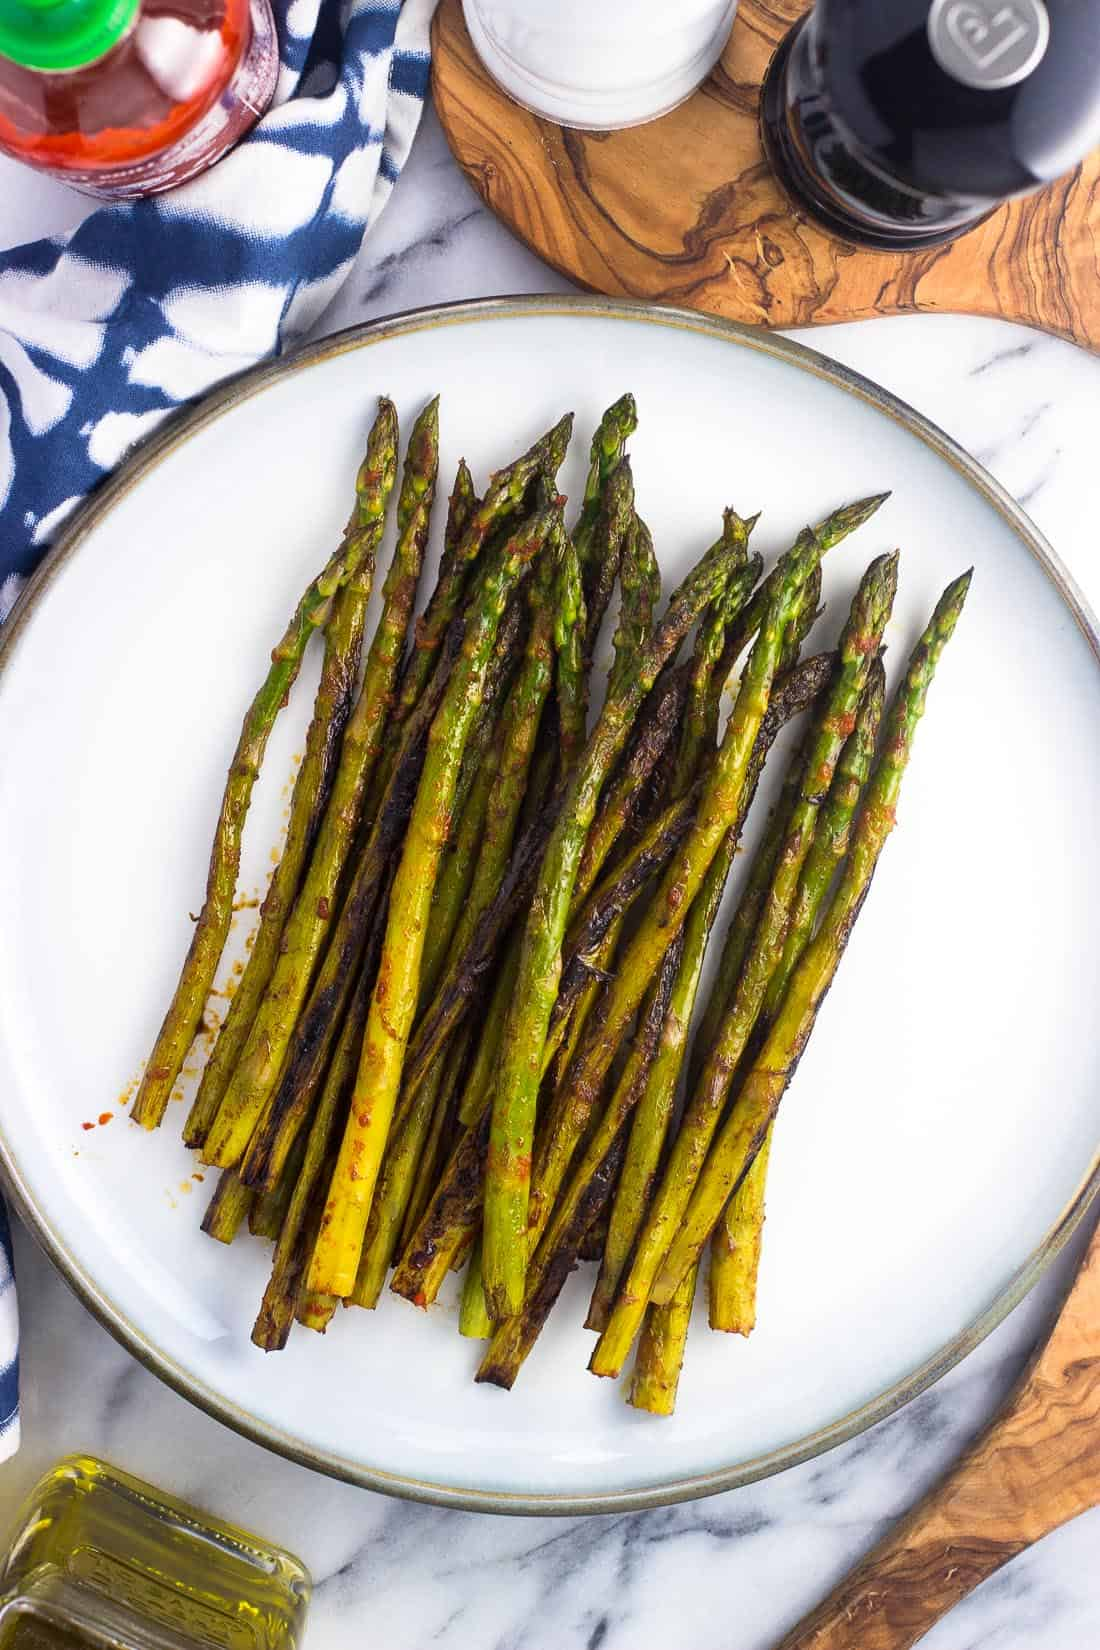 Sauteed asparagus roasted on the stovetop covered in a spicy sriracha mixture